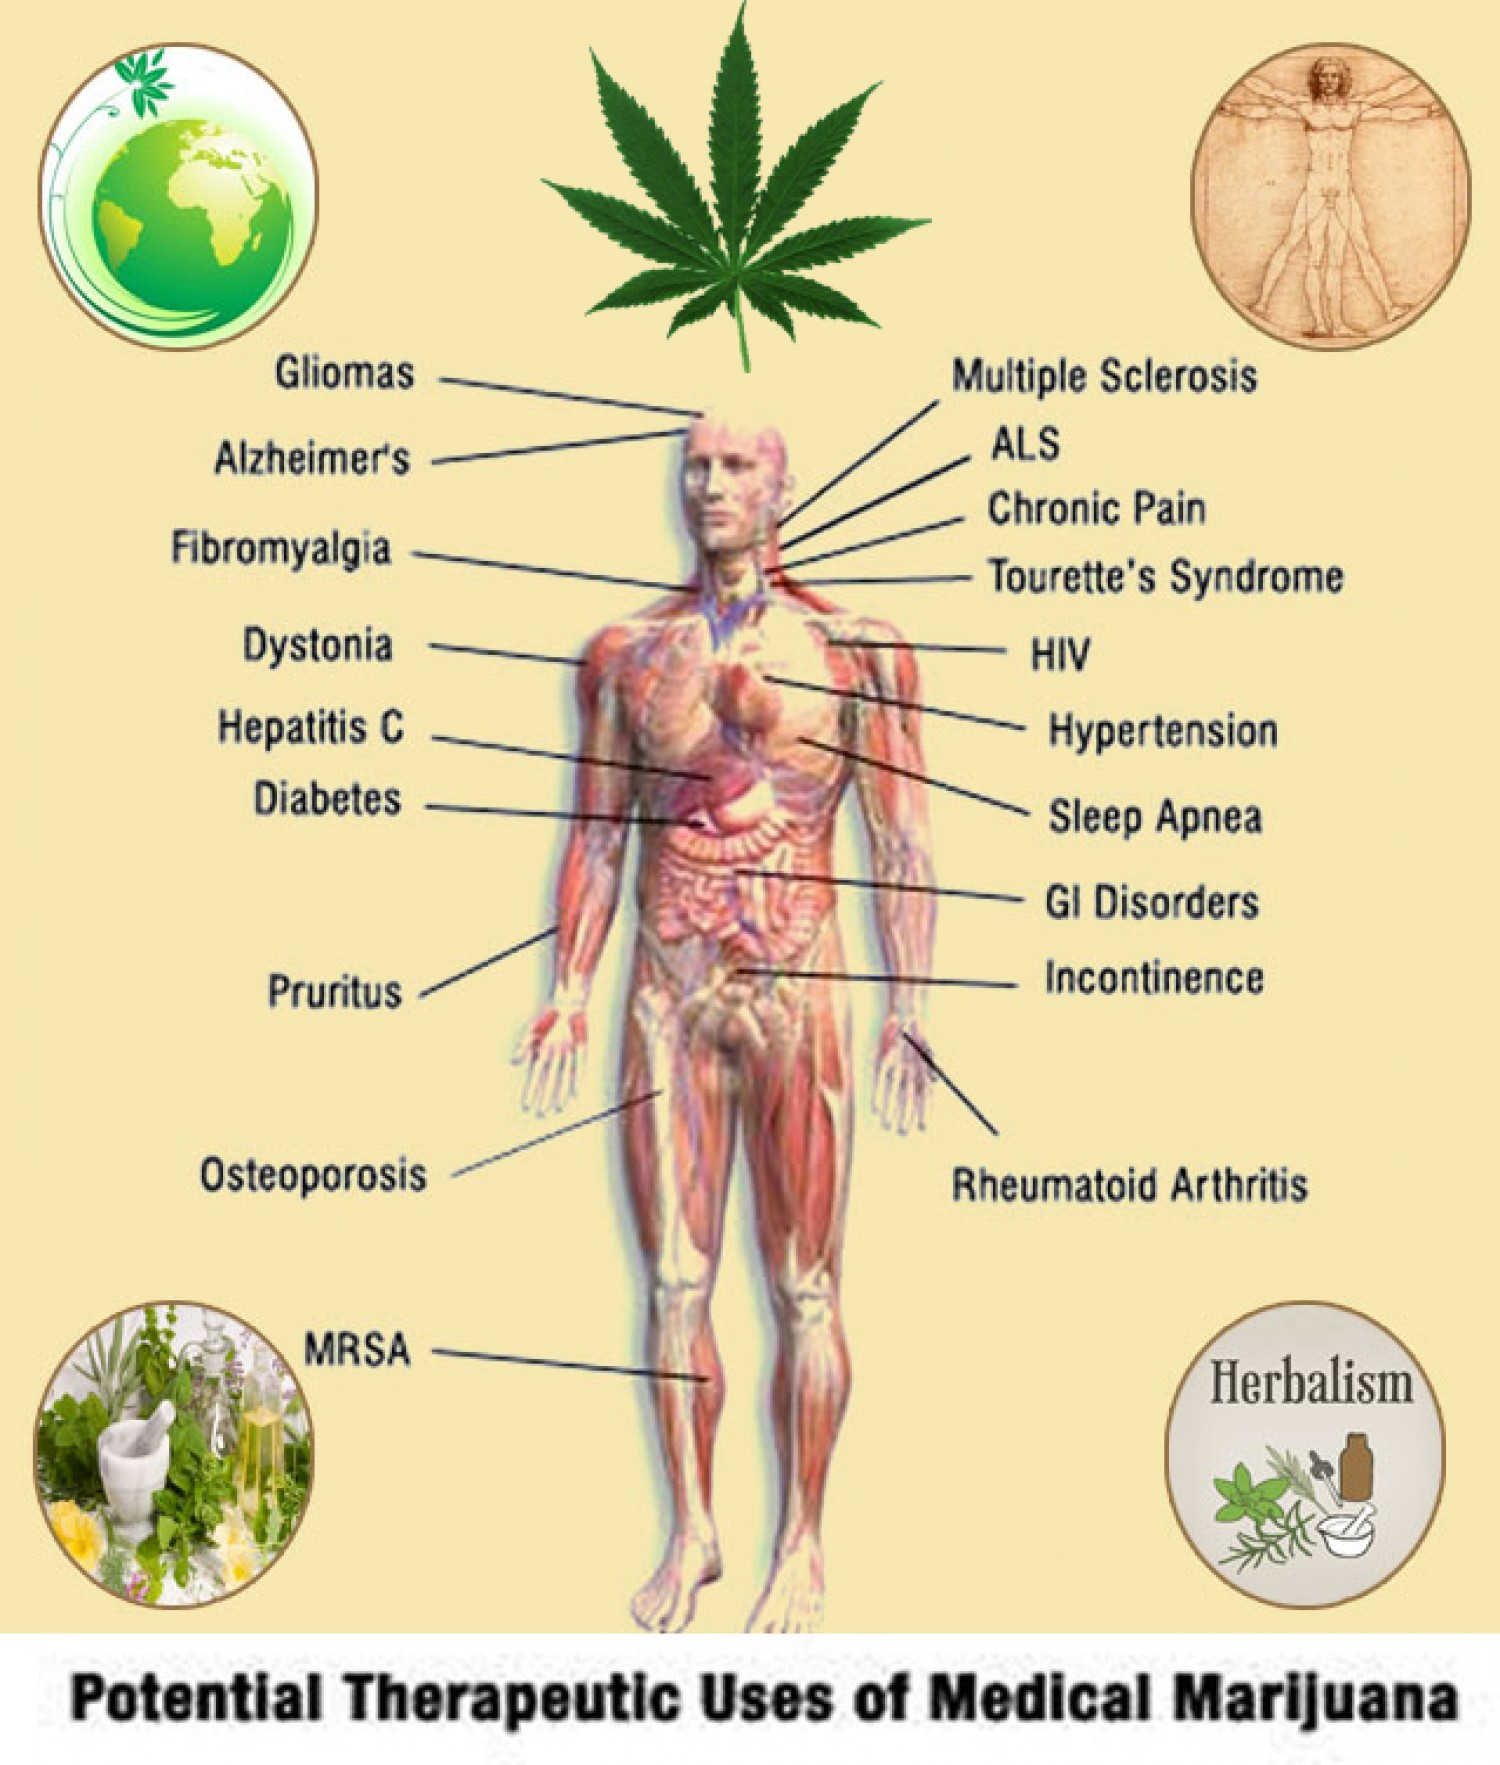 Herbal benefits of medical marijuana. Potential Therapeutic Uses of Medical Marijuana.